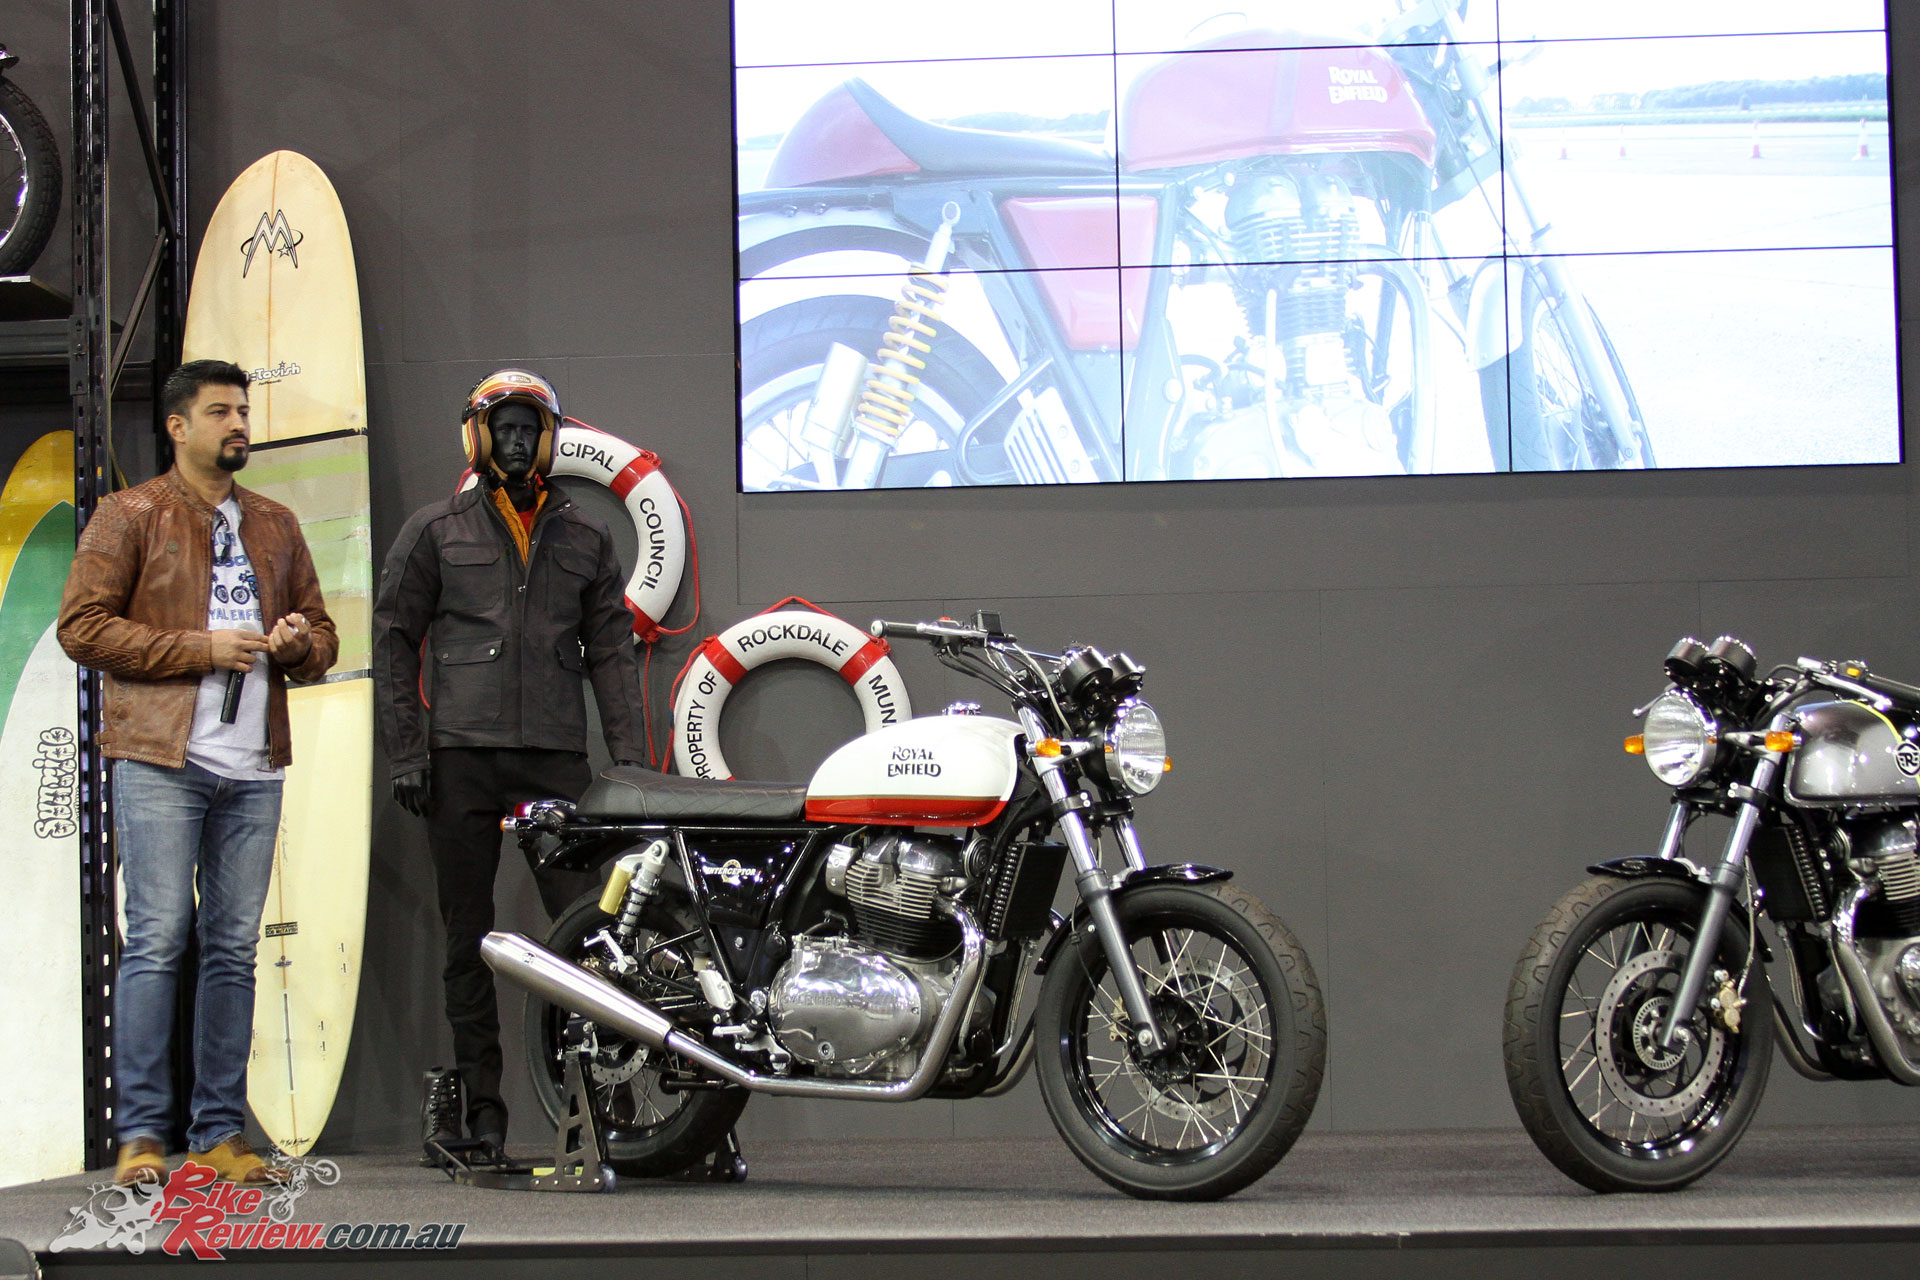 Royal Enfield introduced the Continental GT 650 and Interceptor INT 650